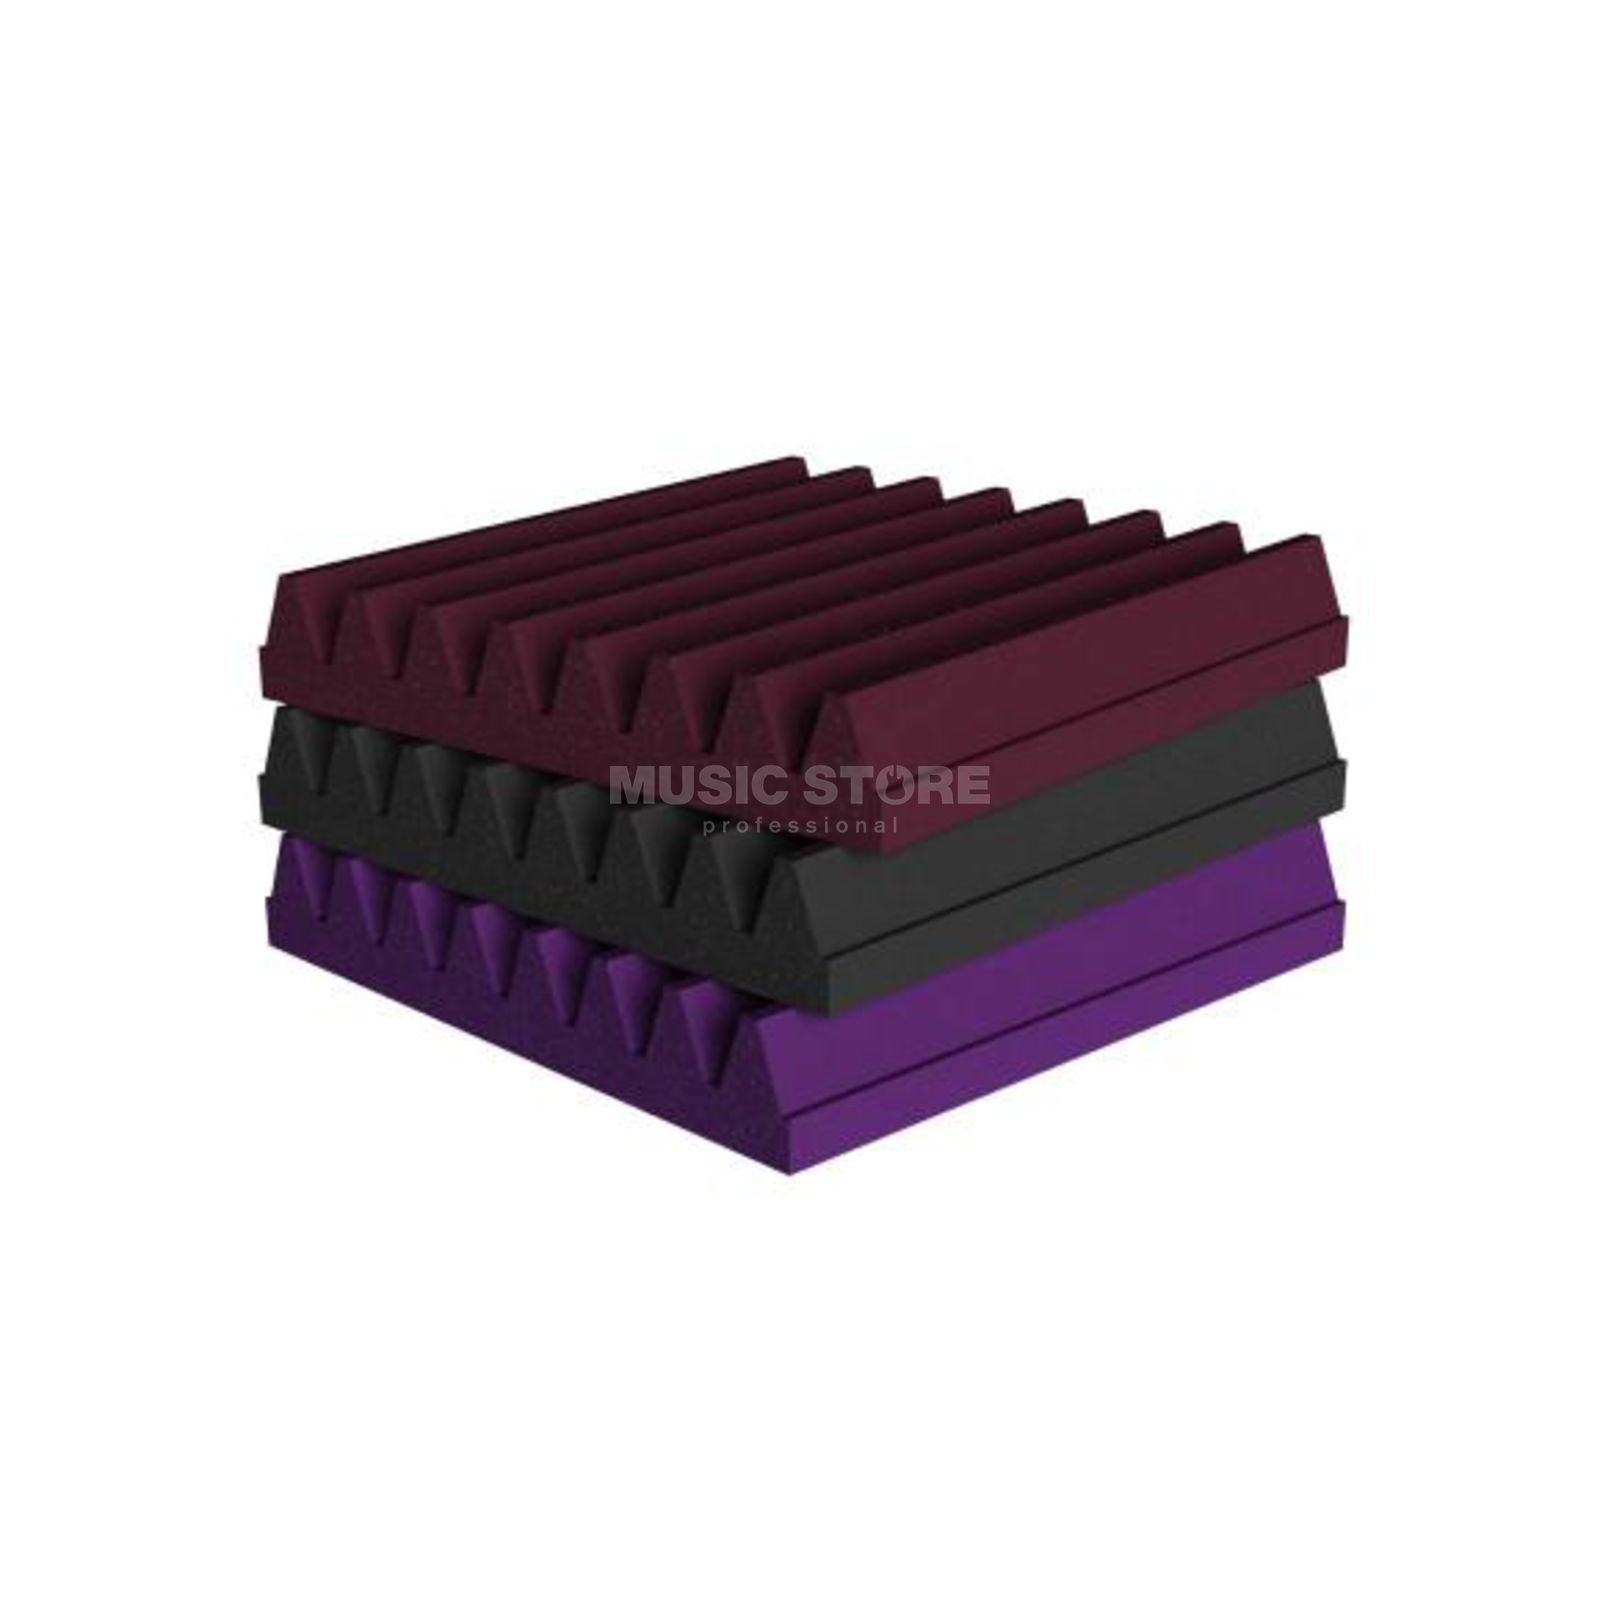 Universal Acoustics Mercury Wedge,600x600x50 mm 10er Pack, violett Produktbild